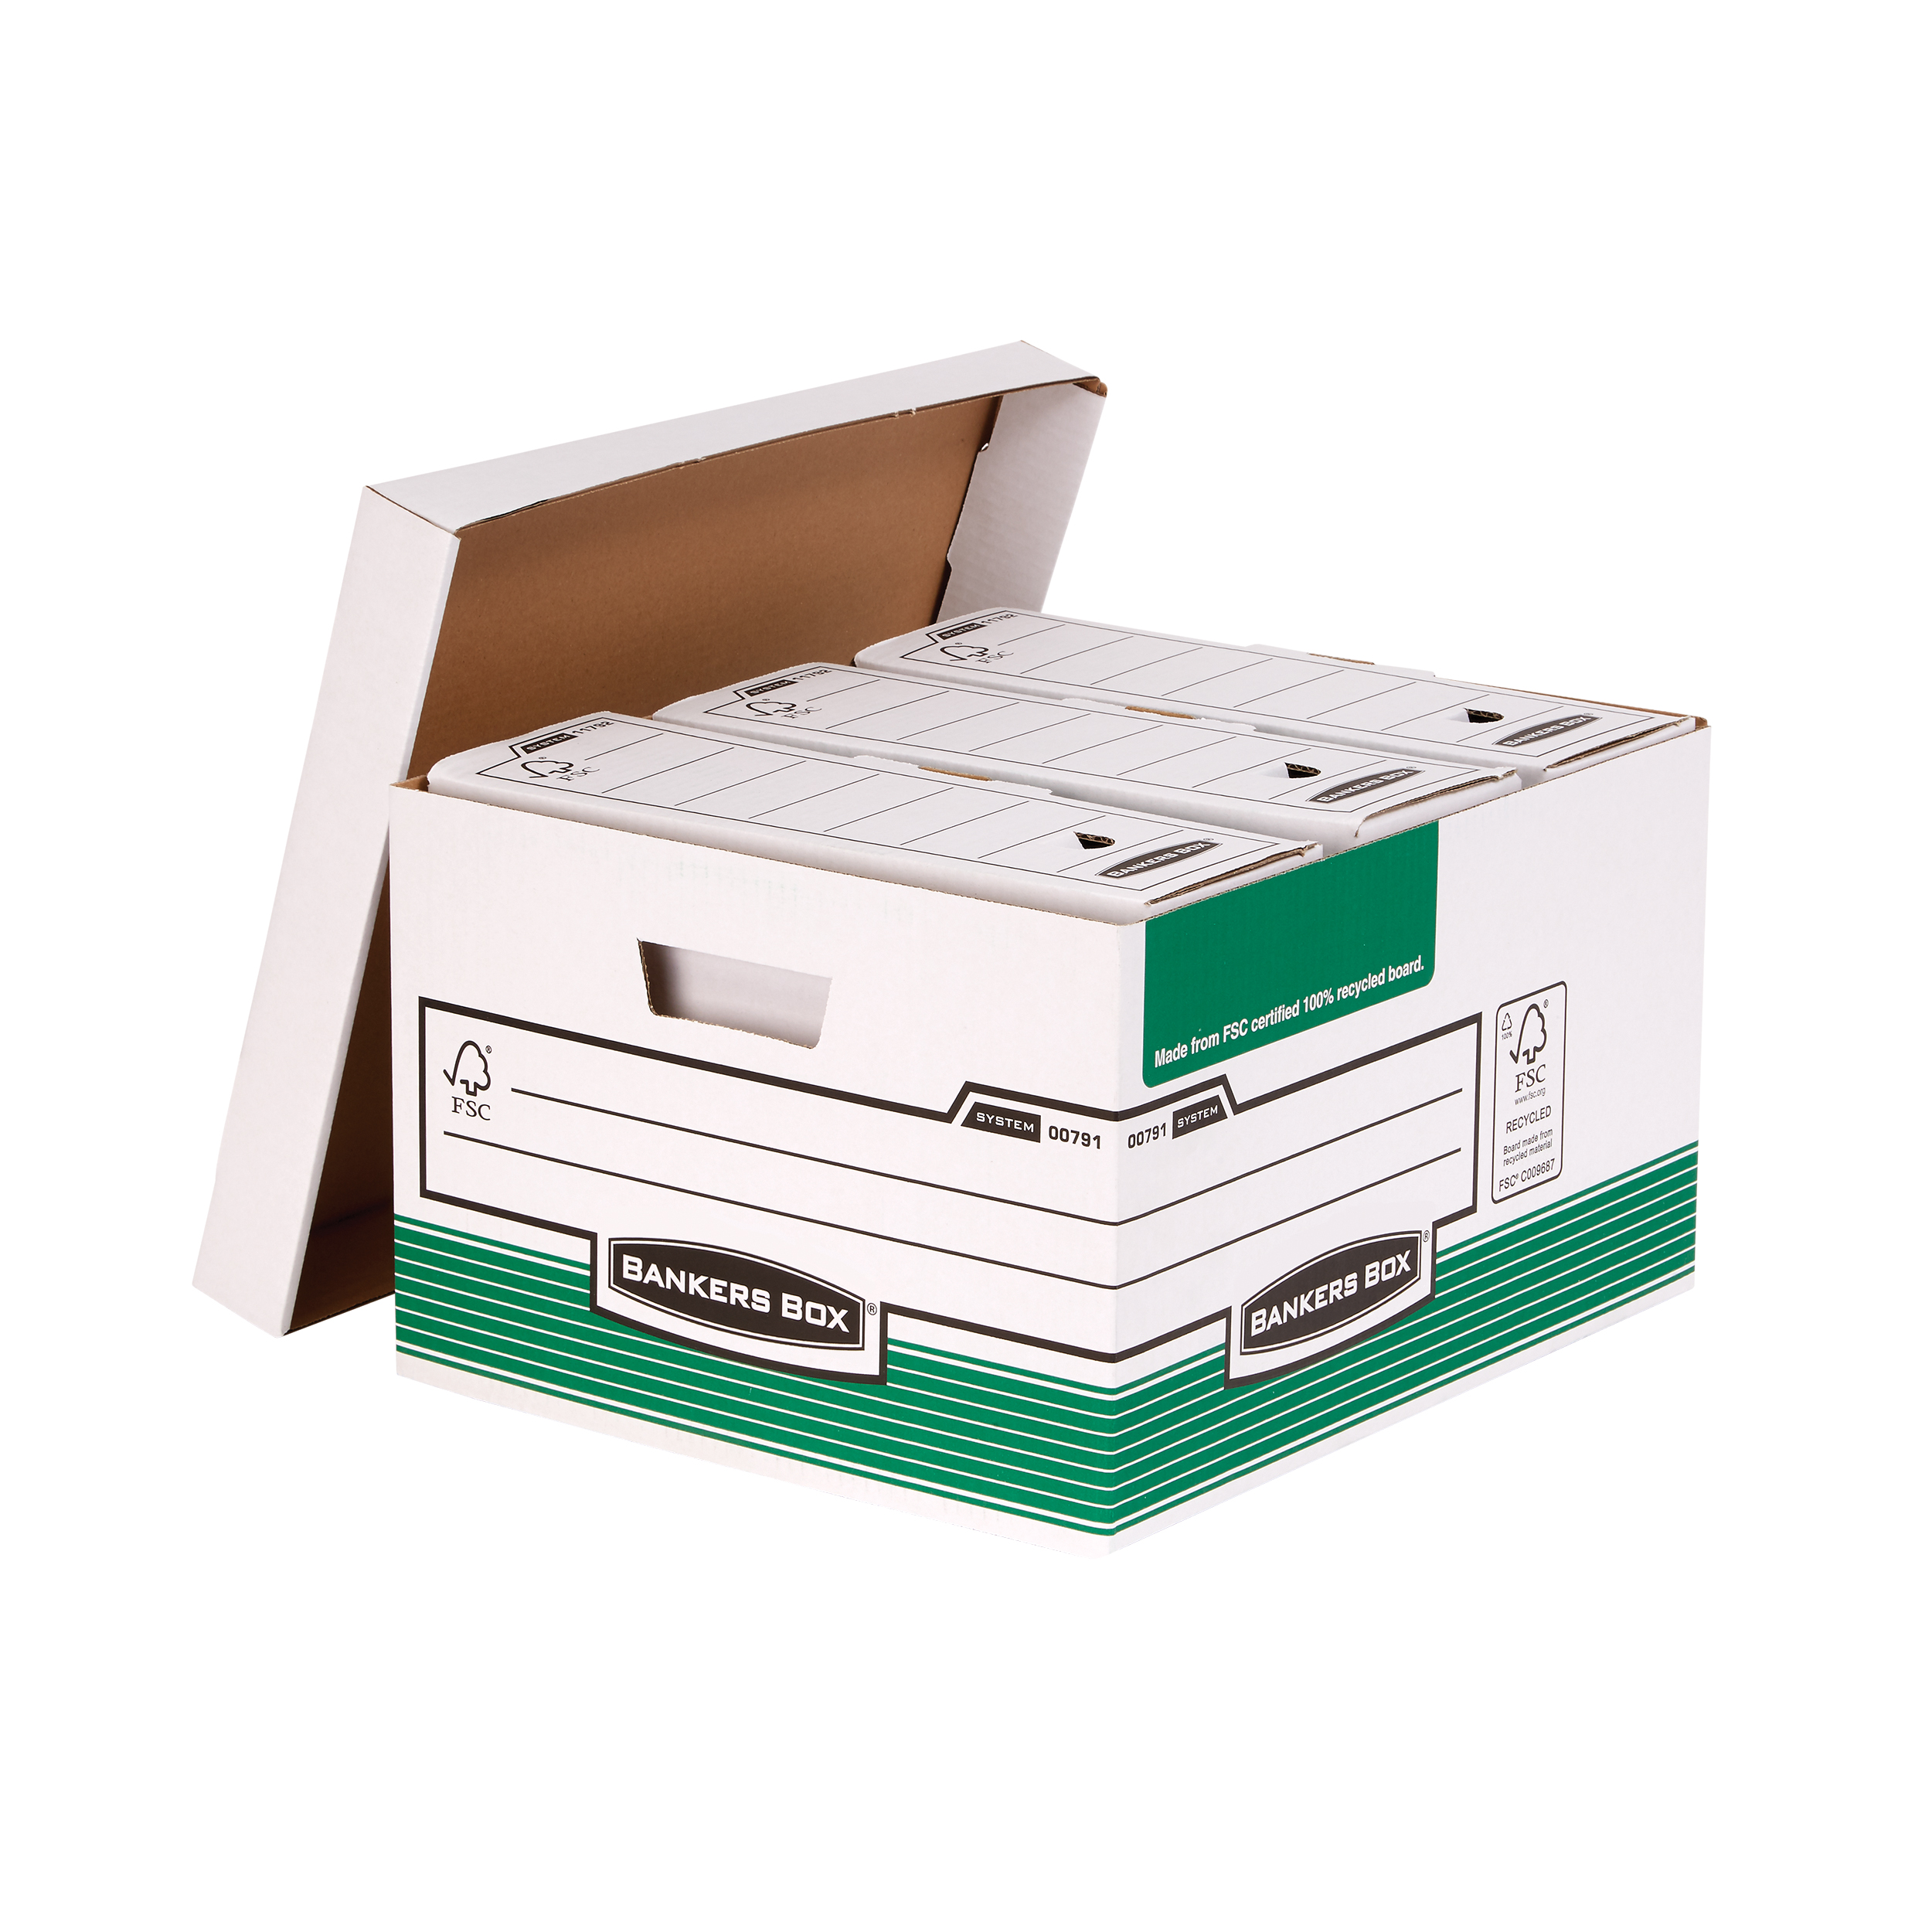 Bankers Box by Fellowes System Storage Box Foolscap White & Green FSC Ref 00791 Pack 10